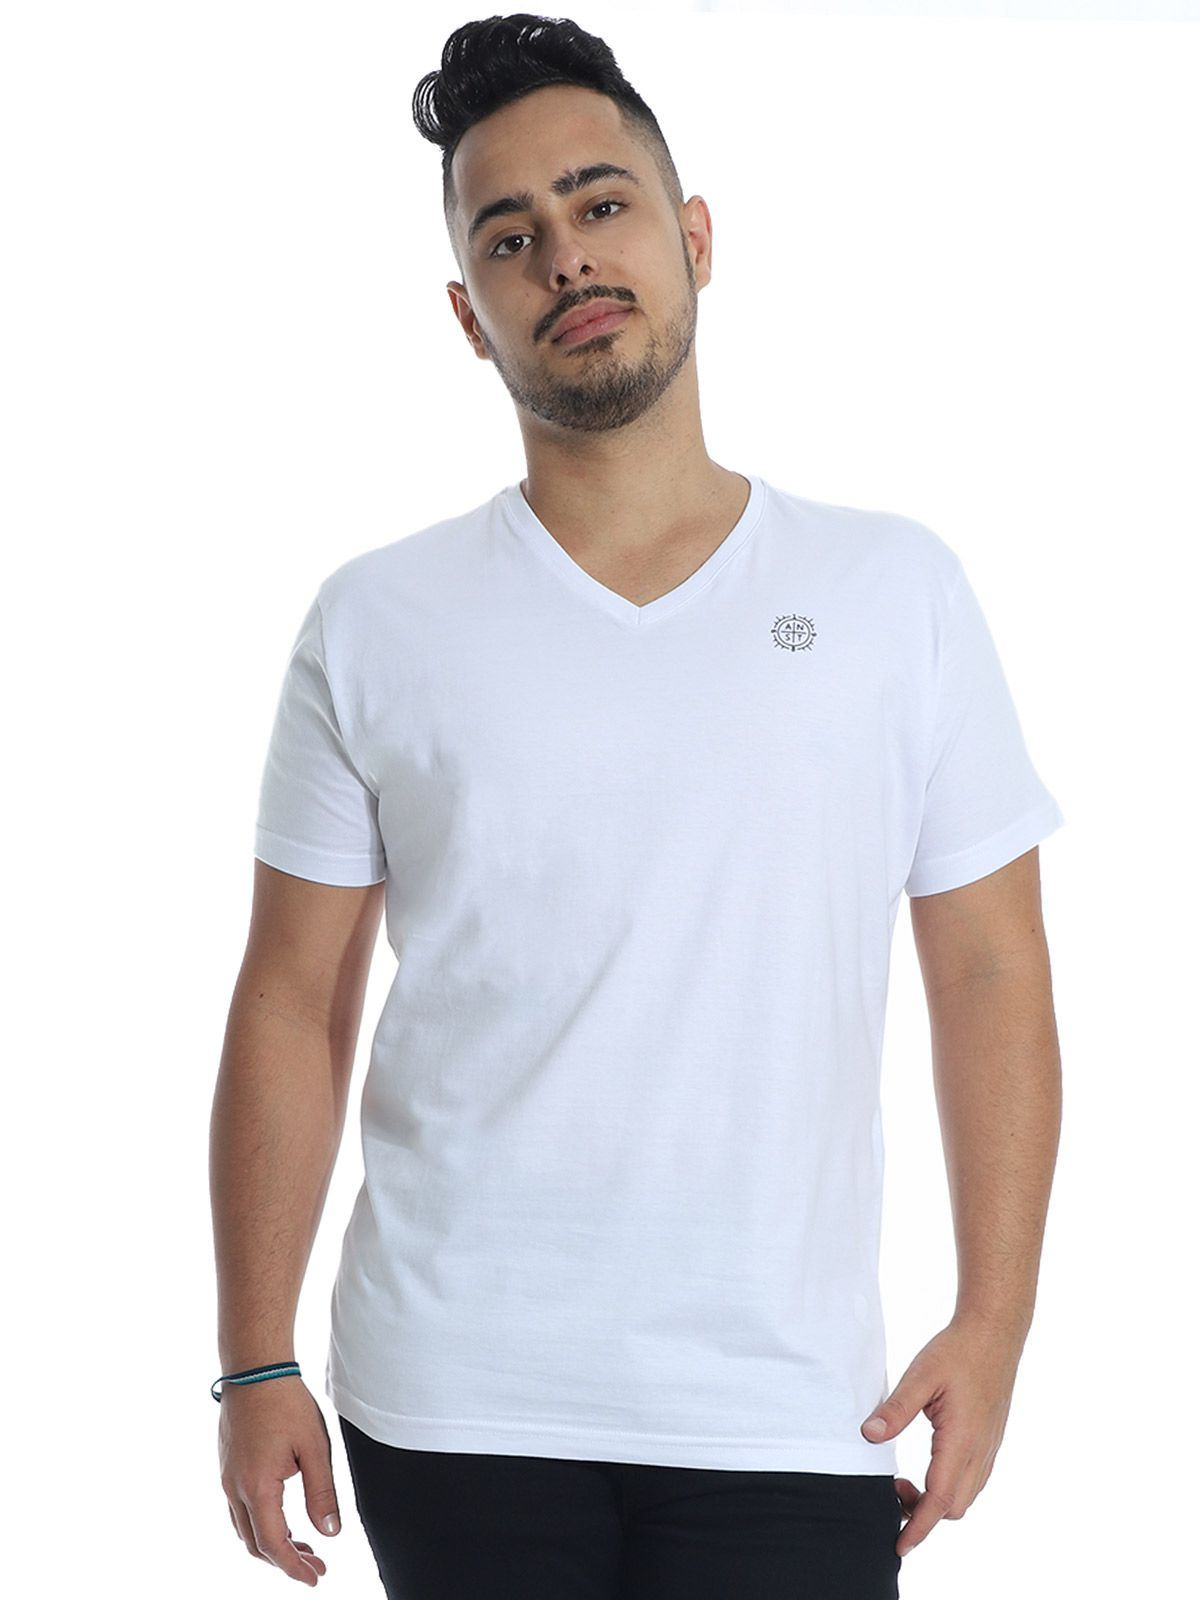 Camiseta Anistia Slim Fit Decote V. ANST Branco